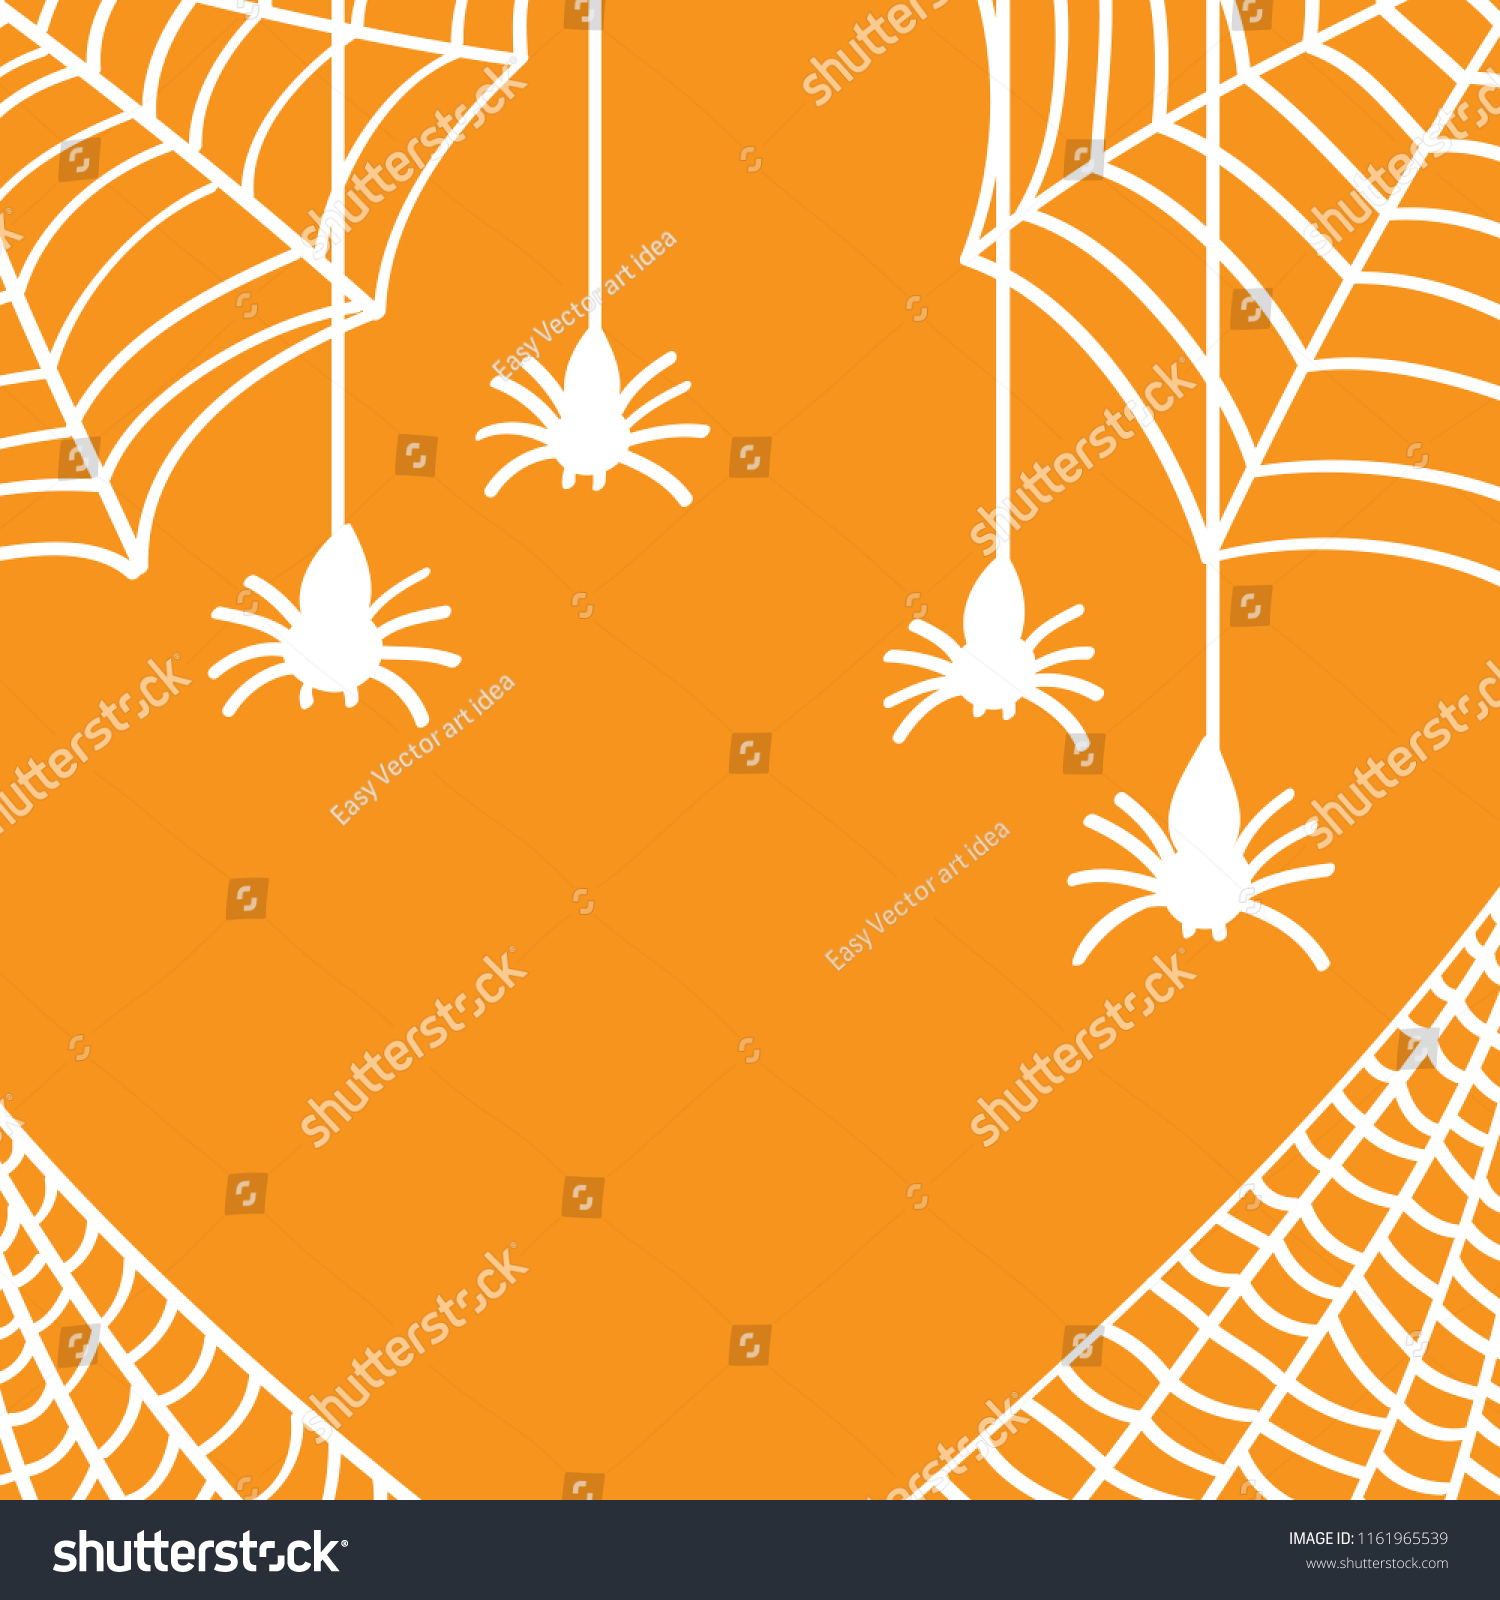 Spider Web Background Wallpaper Halloween Drawing Stock